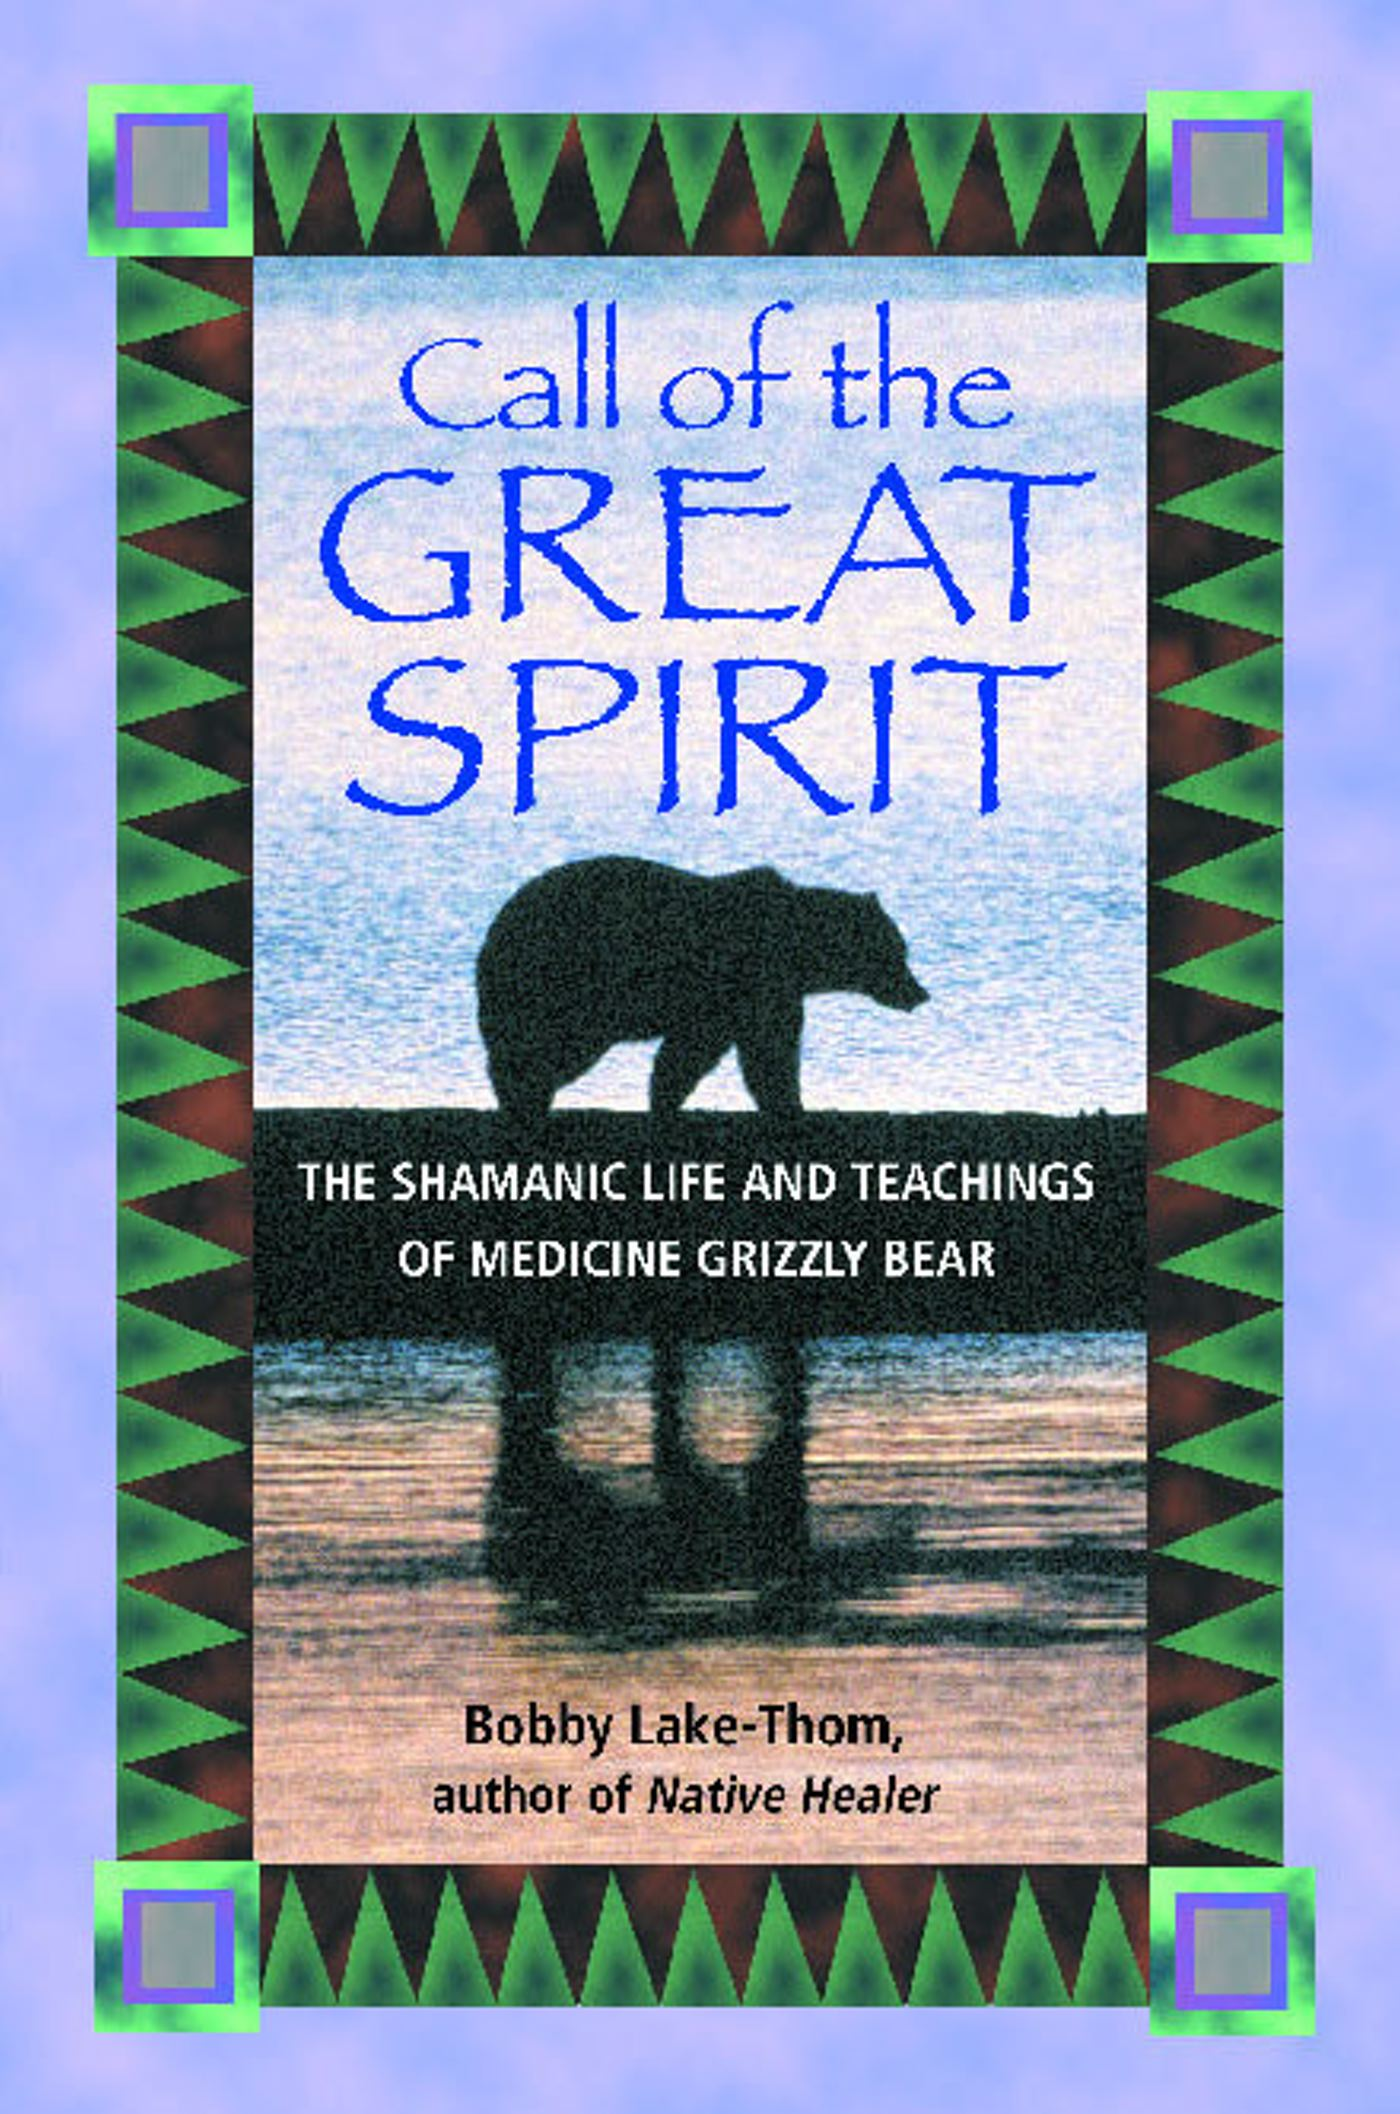 Call of the great spirit 9781879181663 hr